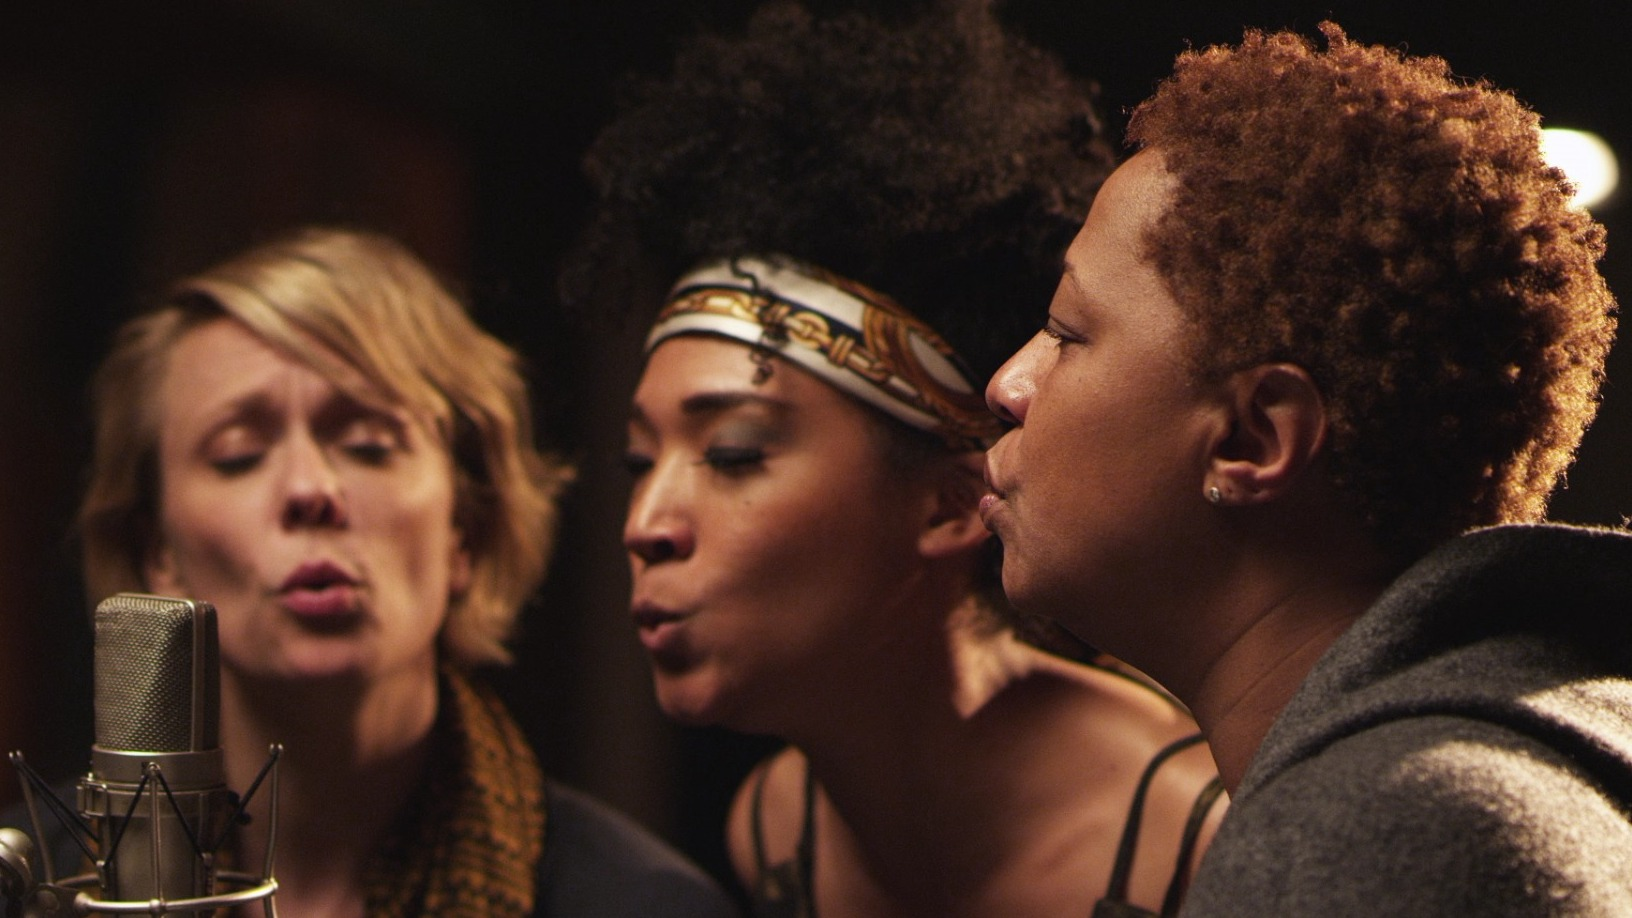 Jo Lawry, Judith Hill and Lisa Fischer are three of the backup singers profiled in the new documentary 20 Feet From Stardom.